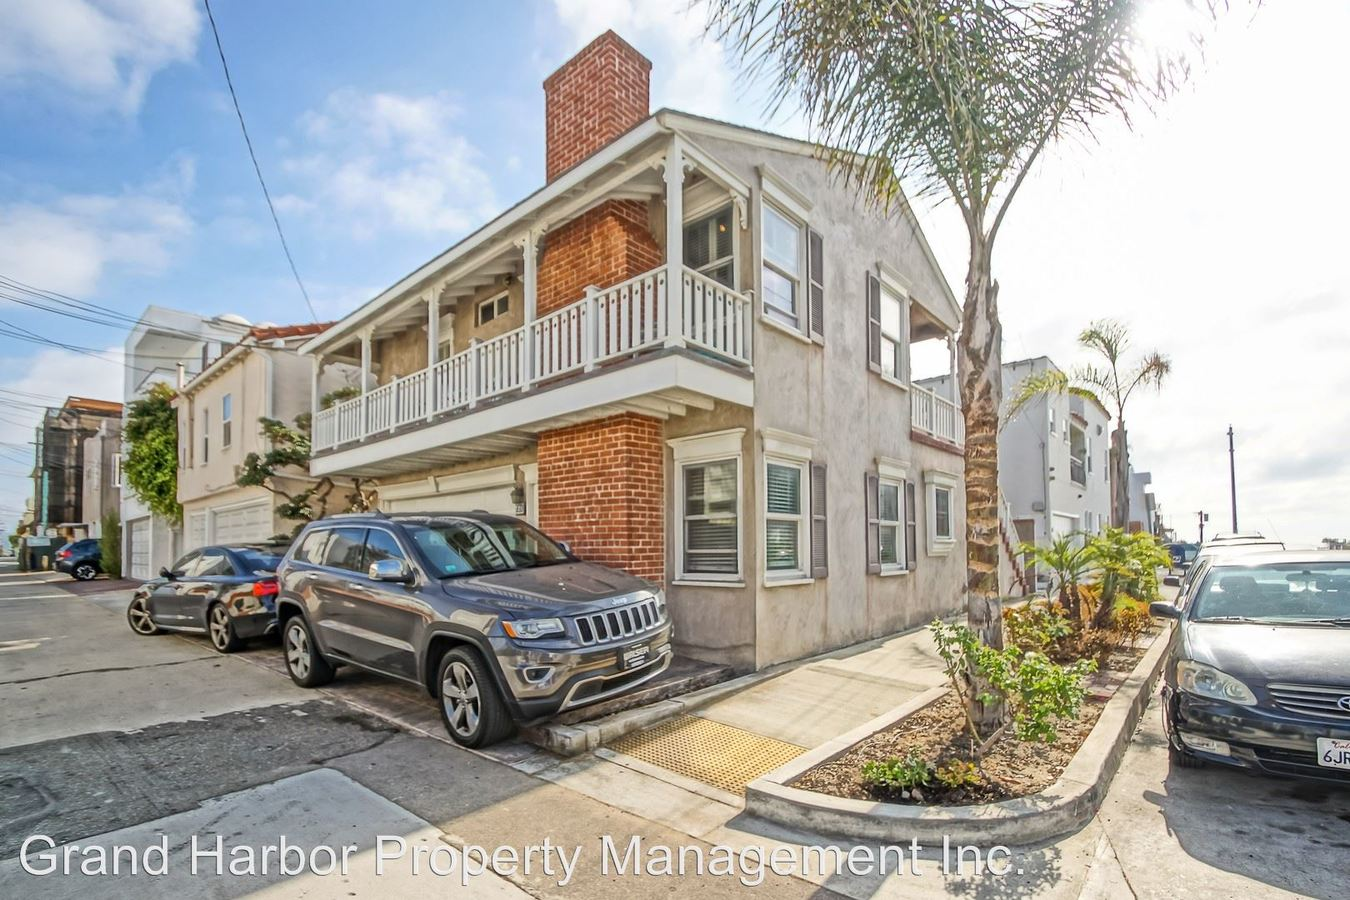 2 Bedrooms 2 Bathrooms Apartment for rent at 310 8th Street - 721 Crest Drive in Manhattan Beach, CA